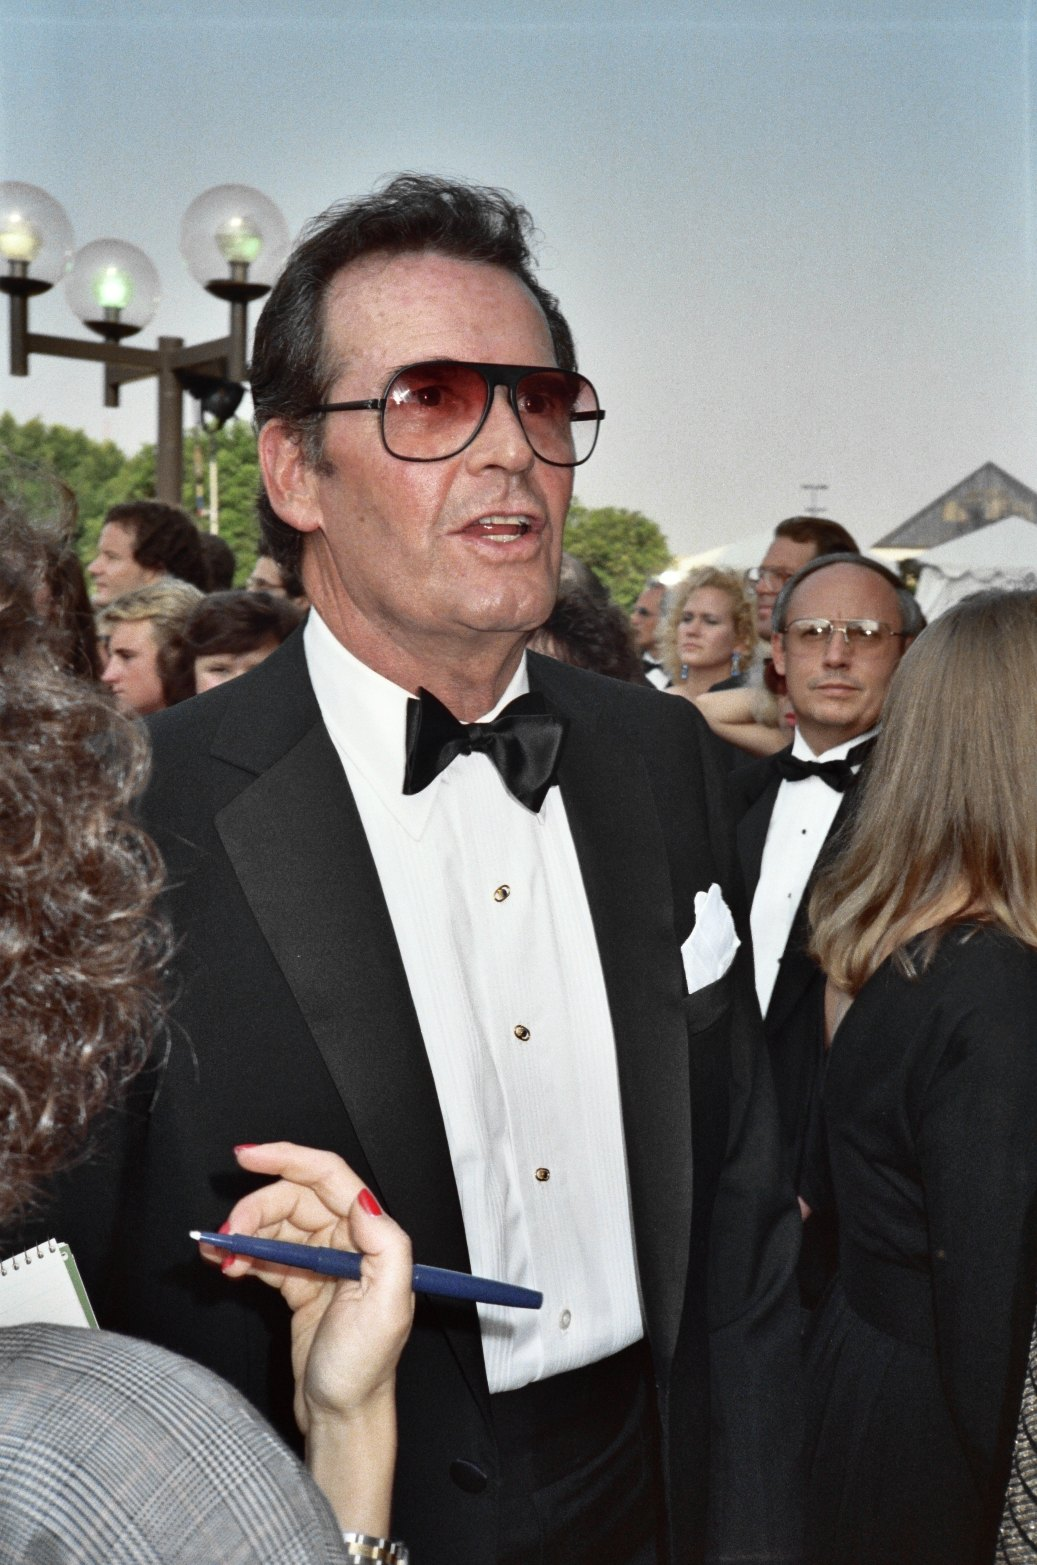 James Garner at the 39th Emmy Awards in September 1987 - click image to to to Wikipedia article